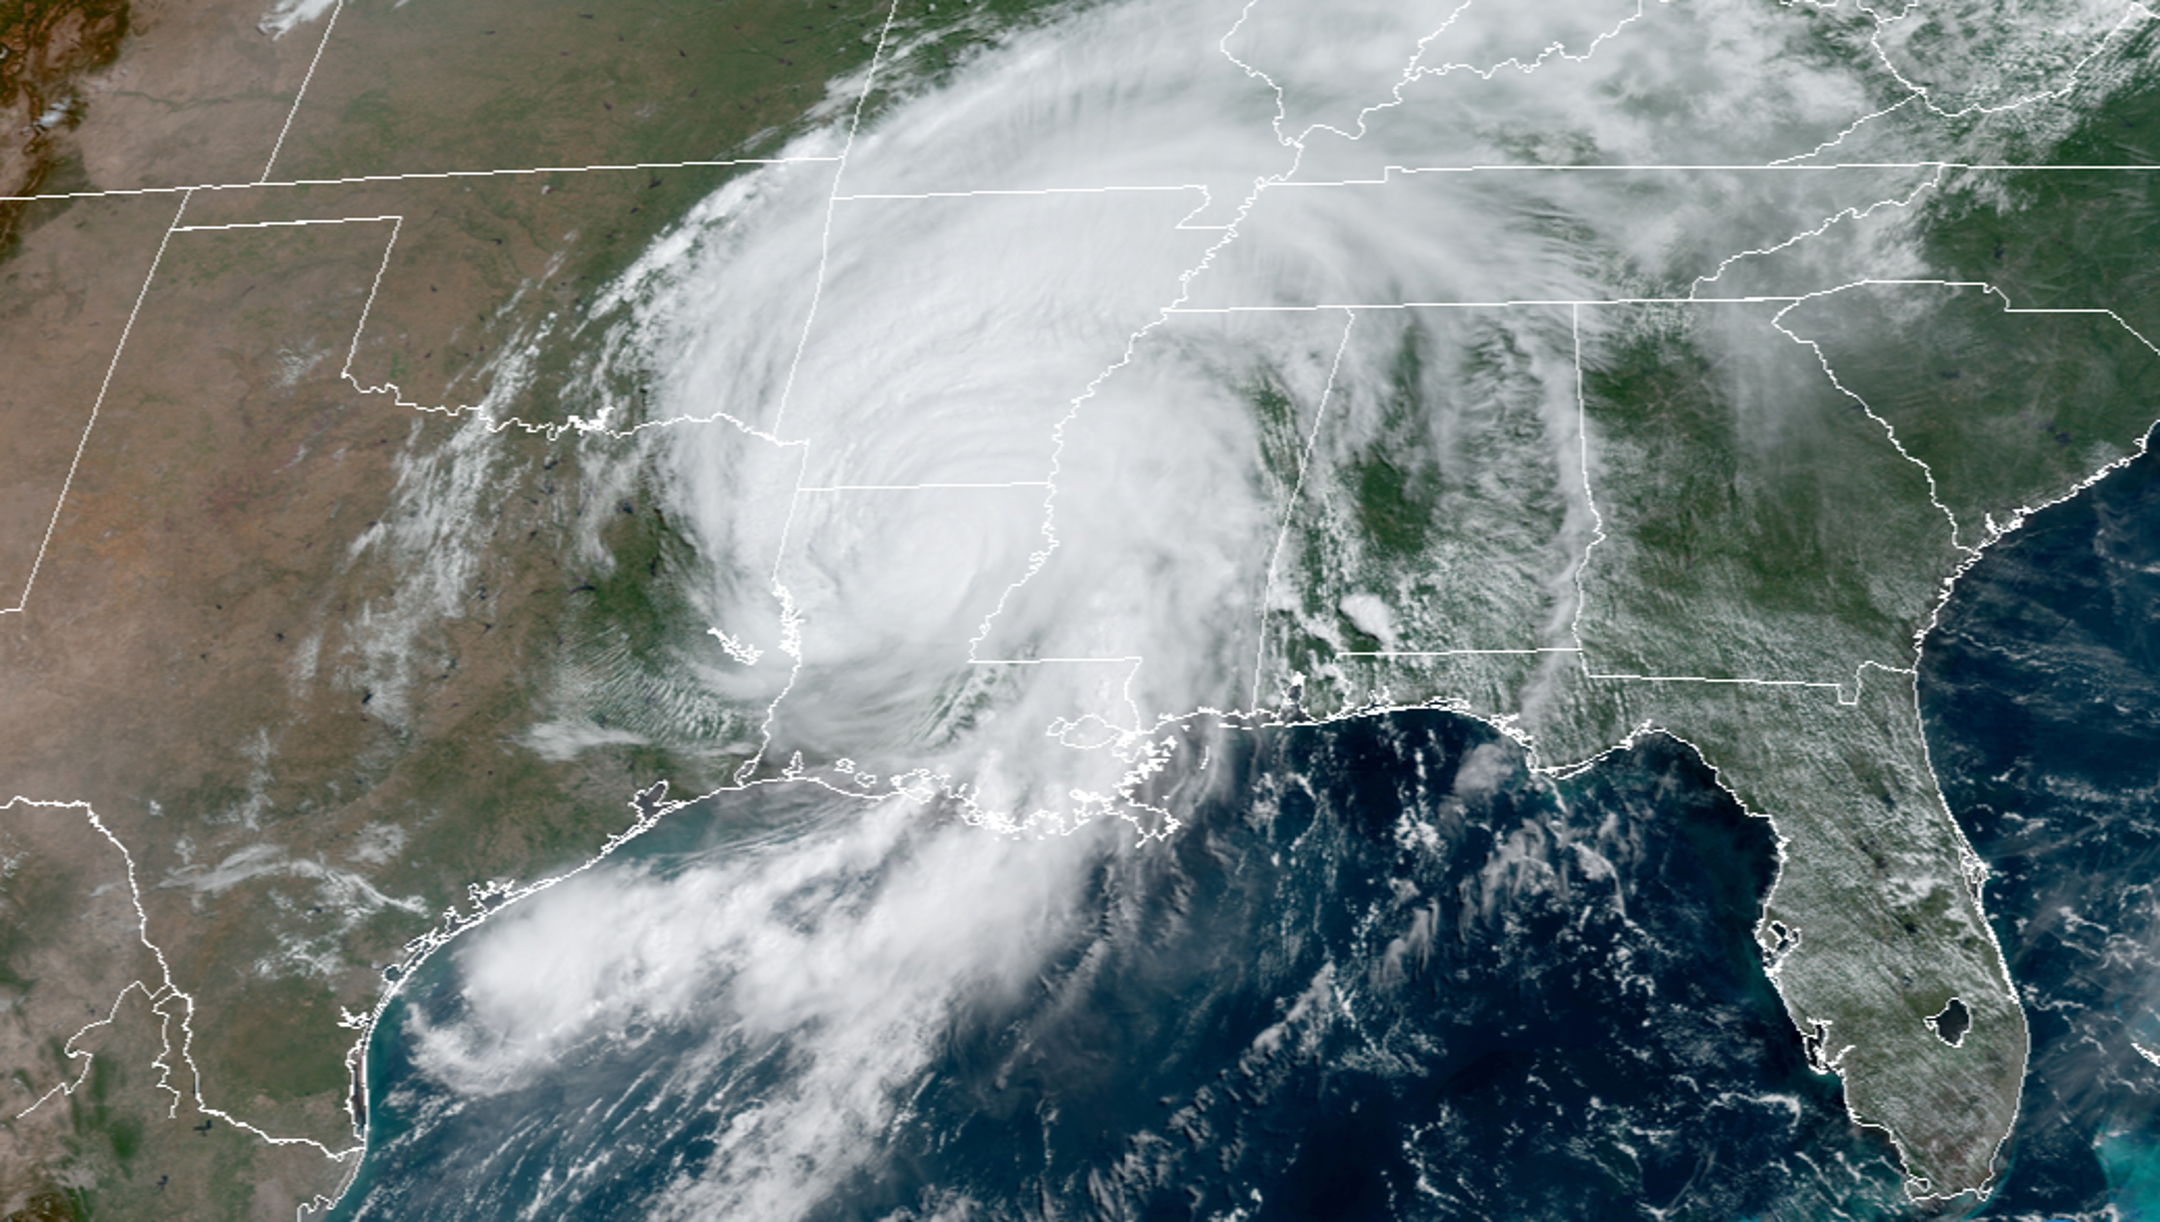 This week's top news in logistics: Hurricane Laura slams the U.S., Cosco to sell stake in CIMC, freezer farms prepped for COVID-19 vaccines, Amazon goes electric with Mercedes Benz, new ship and truck emissions regulations set for 2023.